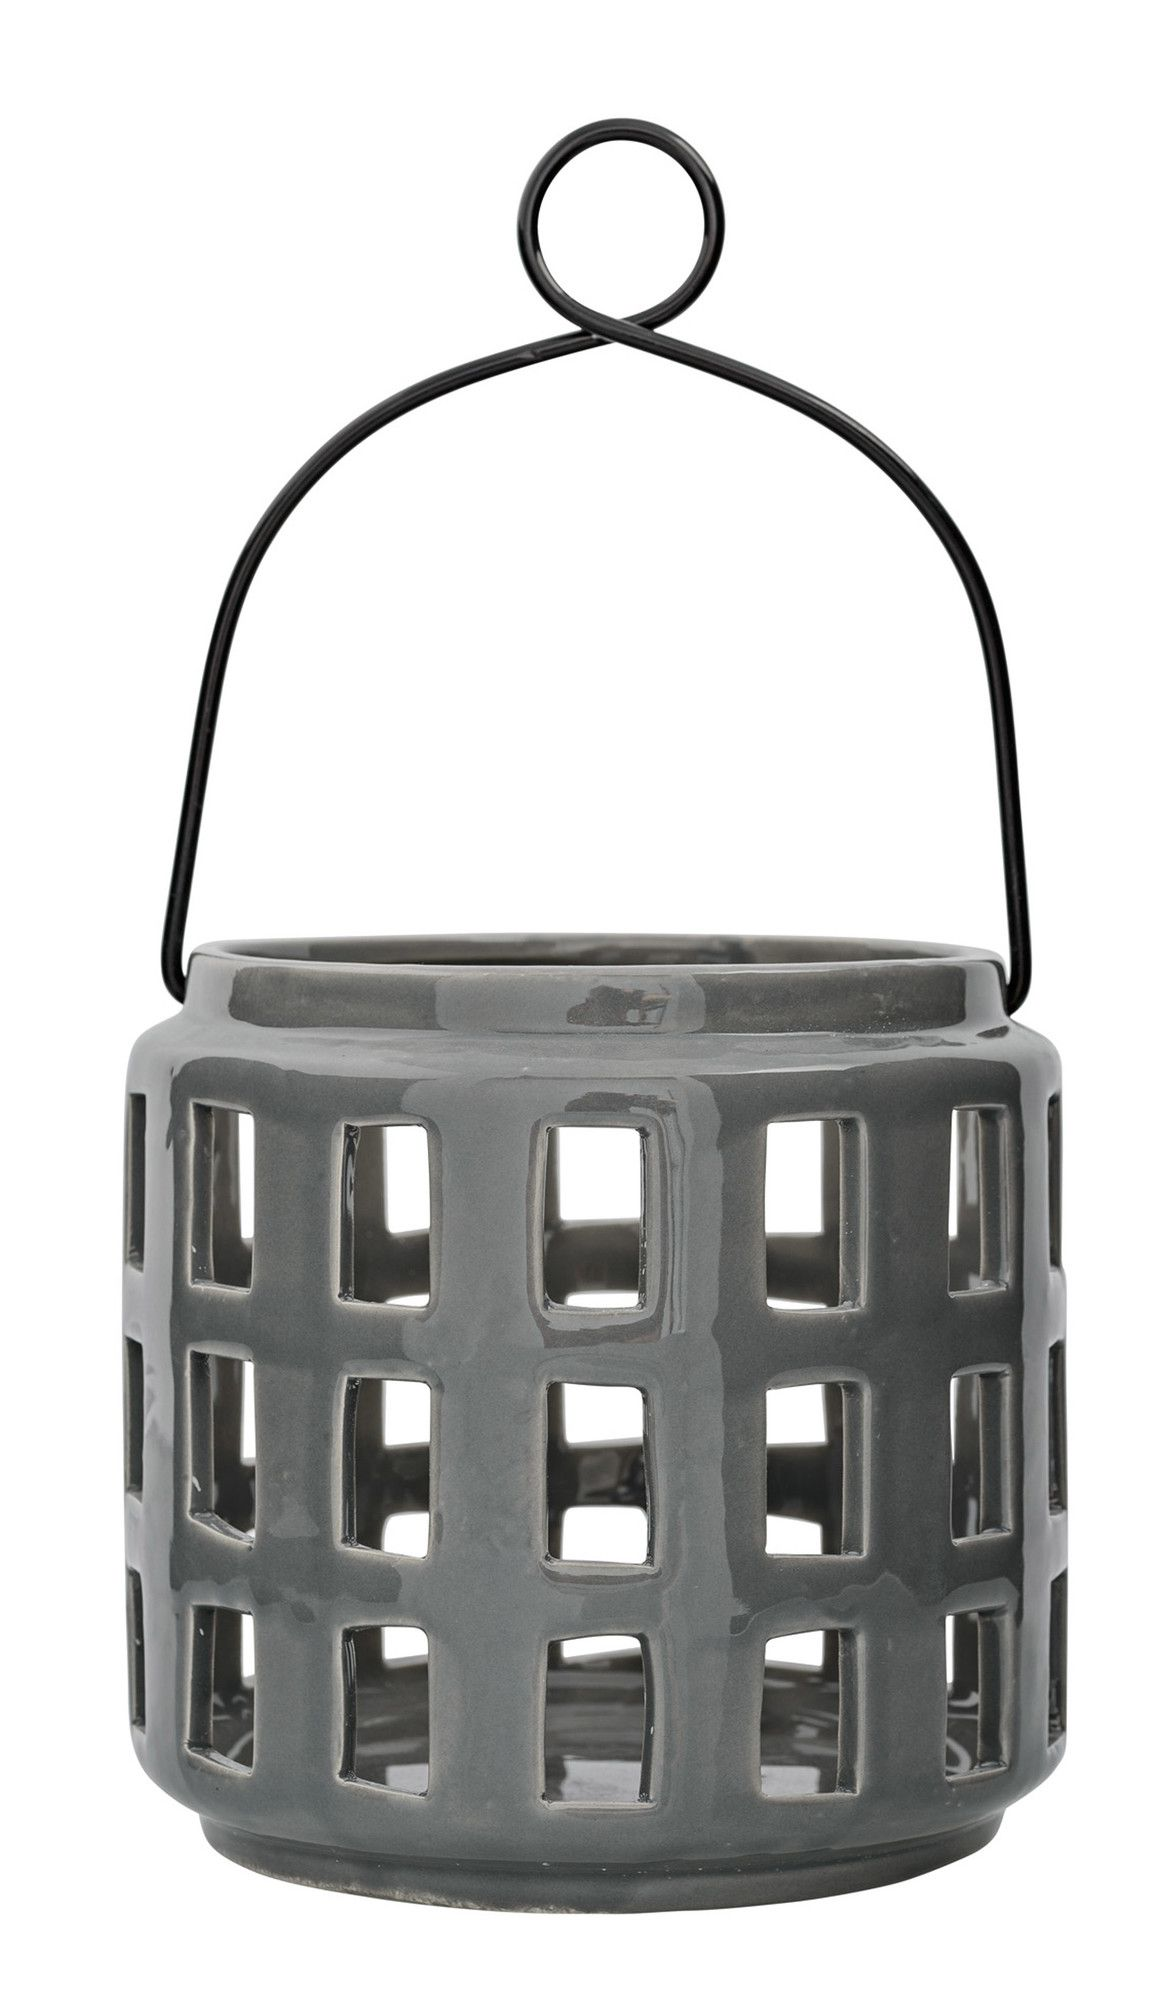 Grey Lantern With Handle: Grey Ceramic Lantern With Handle. Ideal For  Adding The Soft Glow Of Candlelight Around The Home Or Garden.